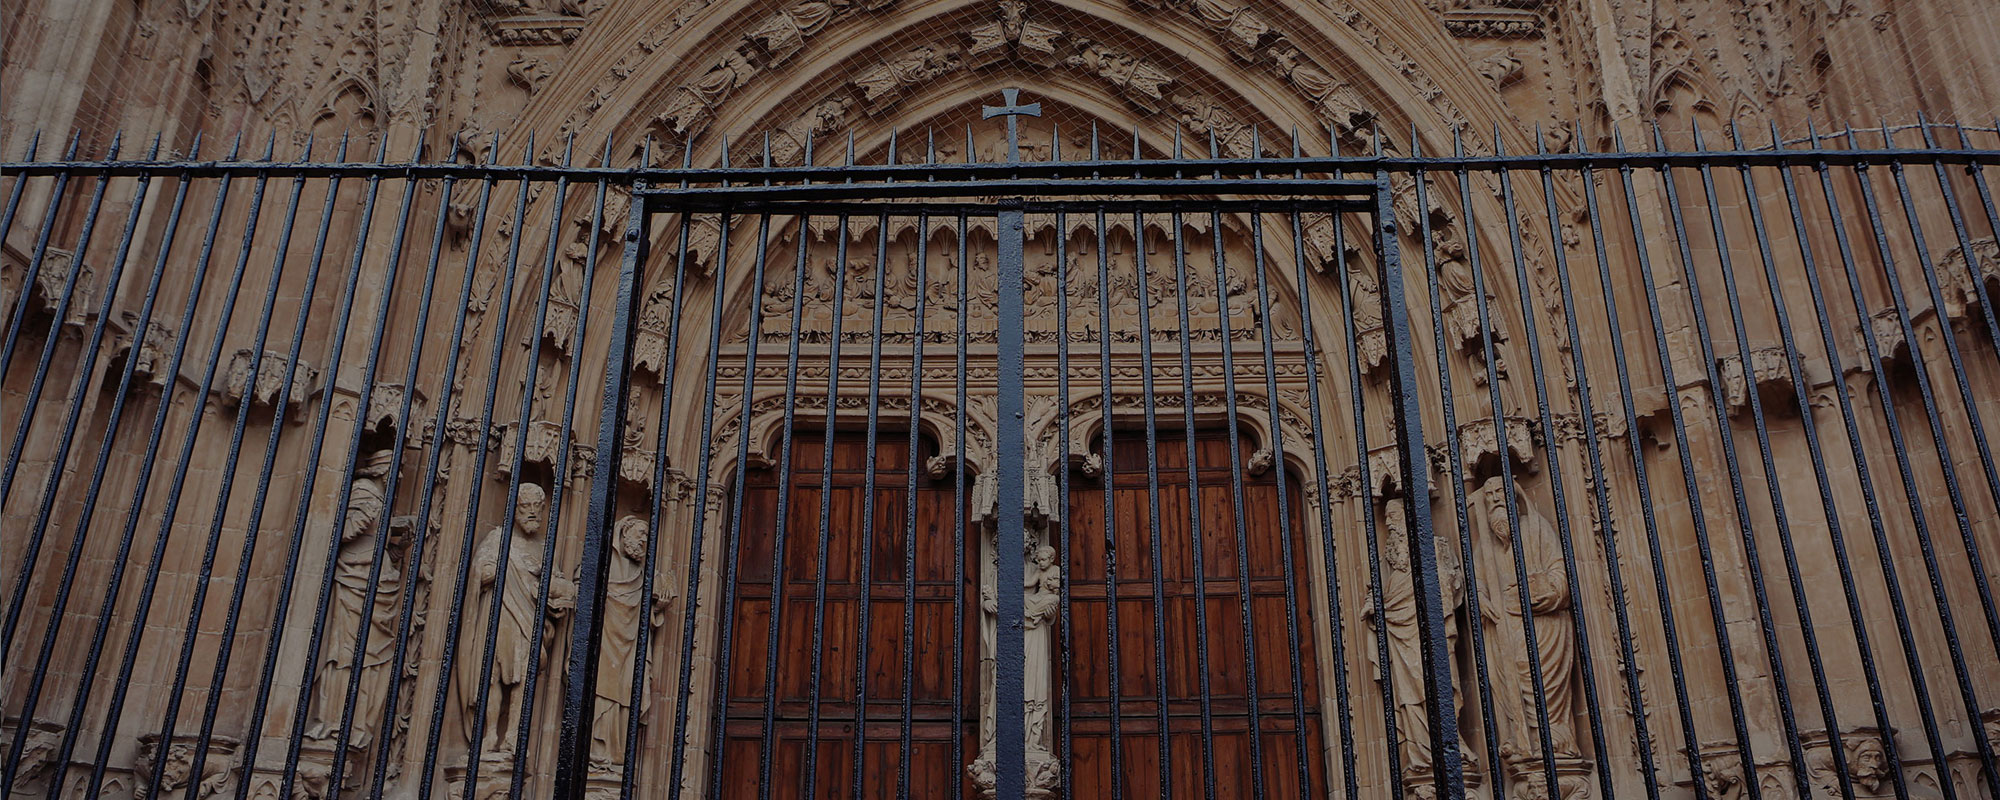 front of a church with closed gate